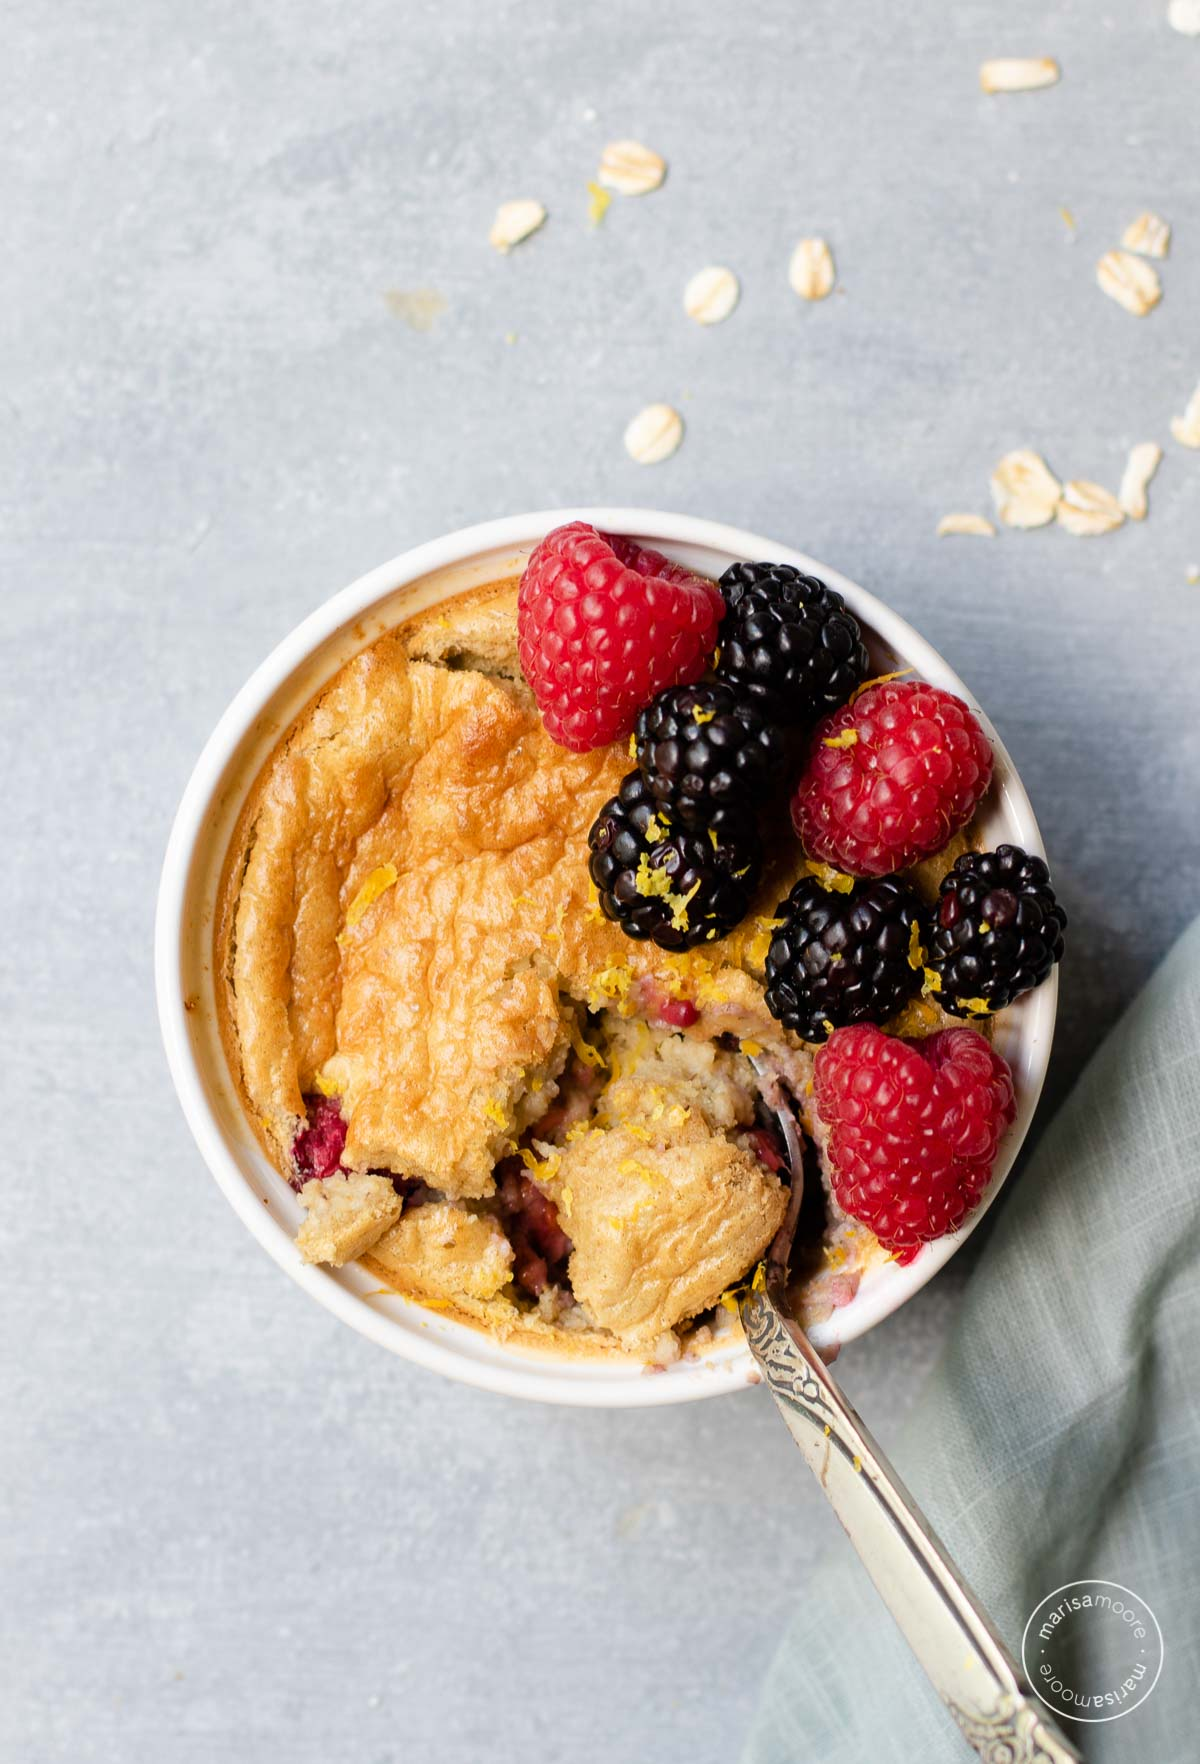 Baked oats with berries in a white ramekin with a spoon